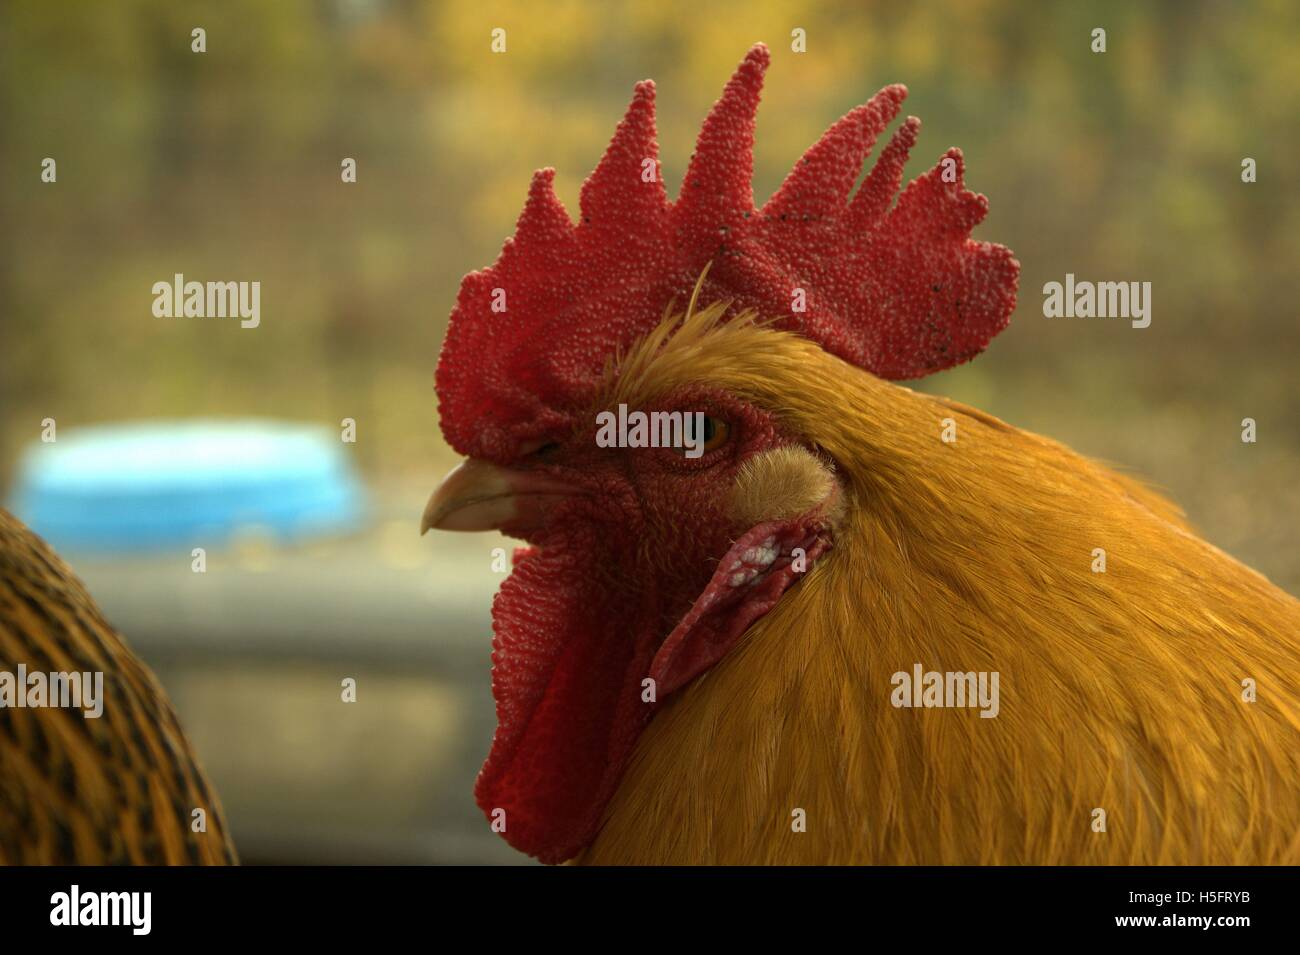 Buff Orpington Rooster Close Up - Stock Image